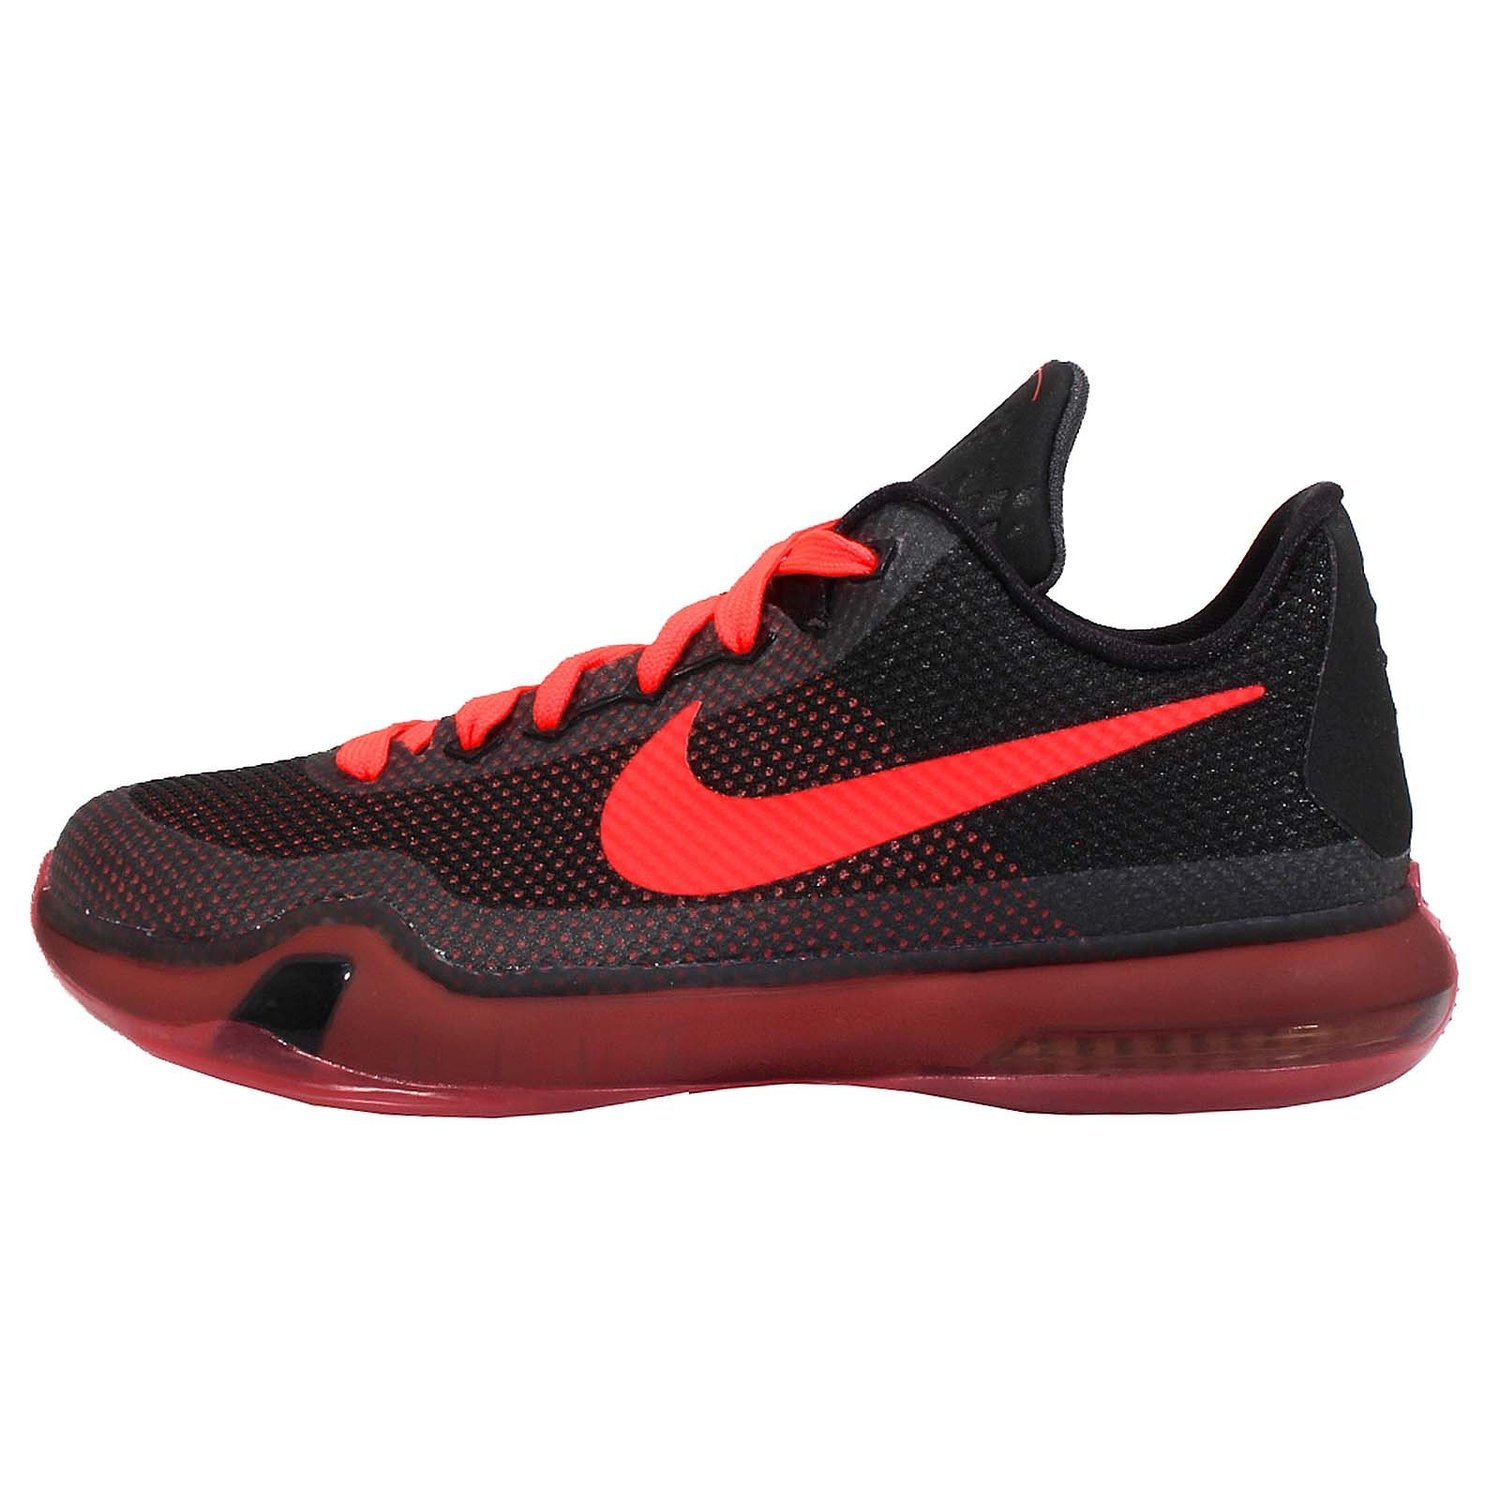 finest selection 2a547 1d0e2 Get Quotations · Nike Kobe X GS 10 Youth Boys Basketball Shoes Kobe Bryant  726067-060